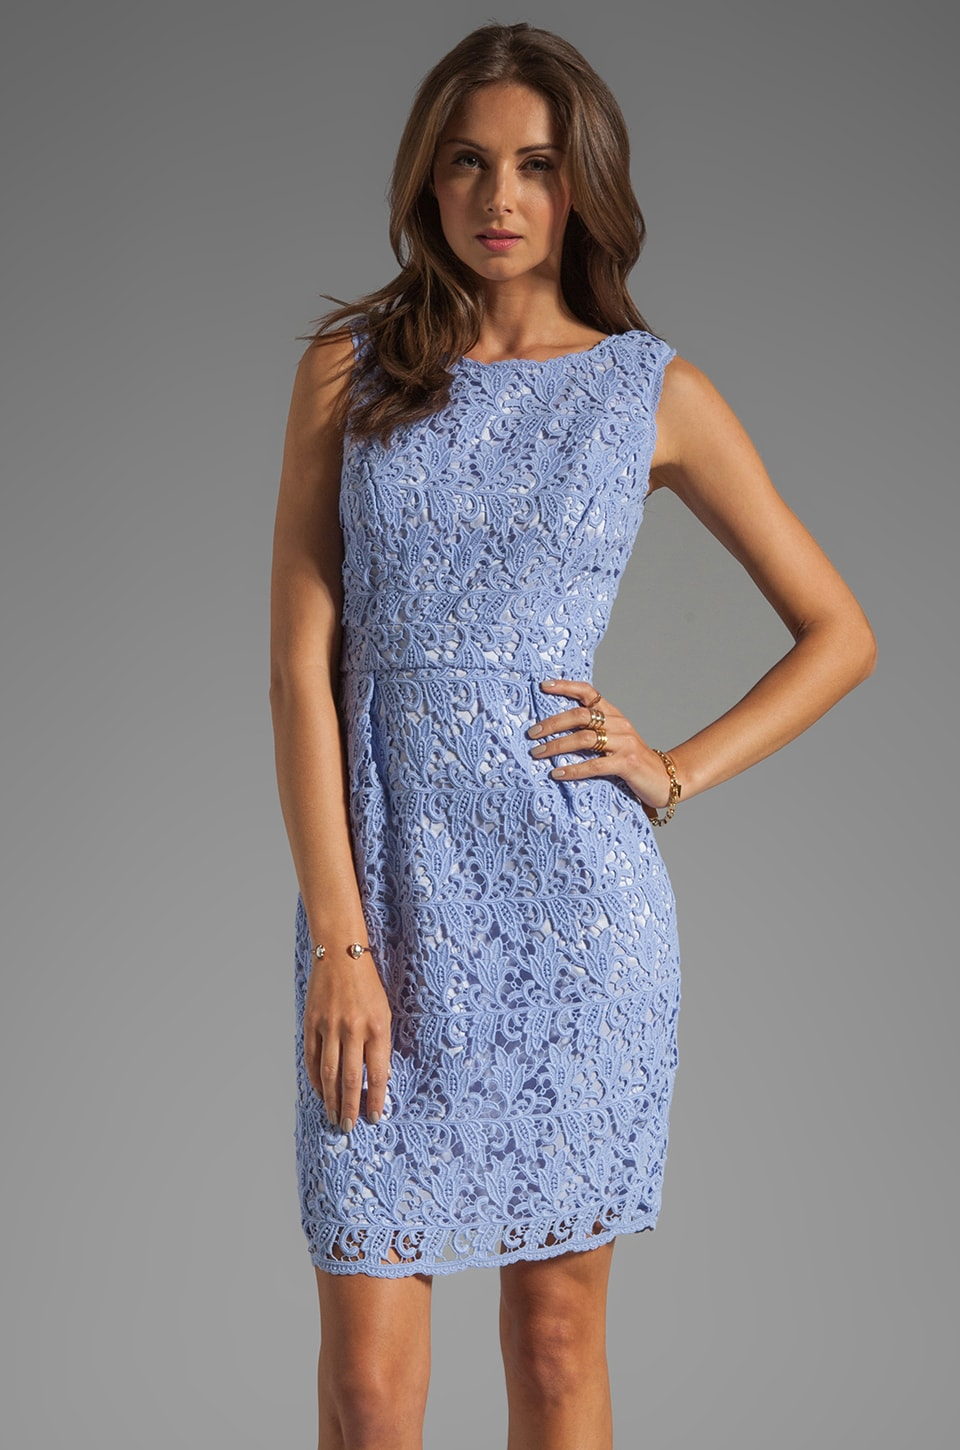 Shoshanna Lace Nyla Sheath Dress in Lavender